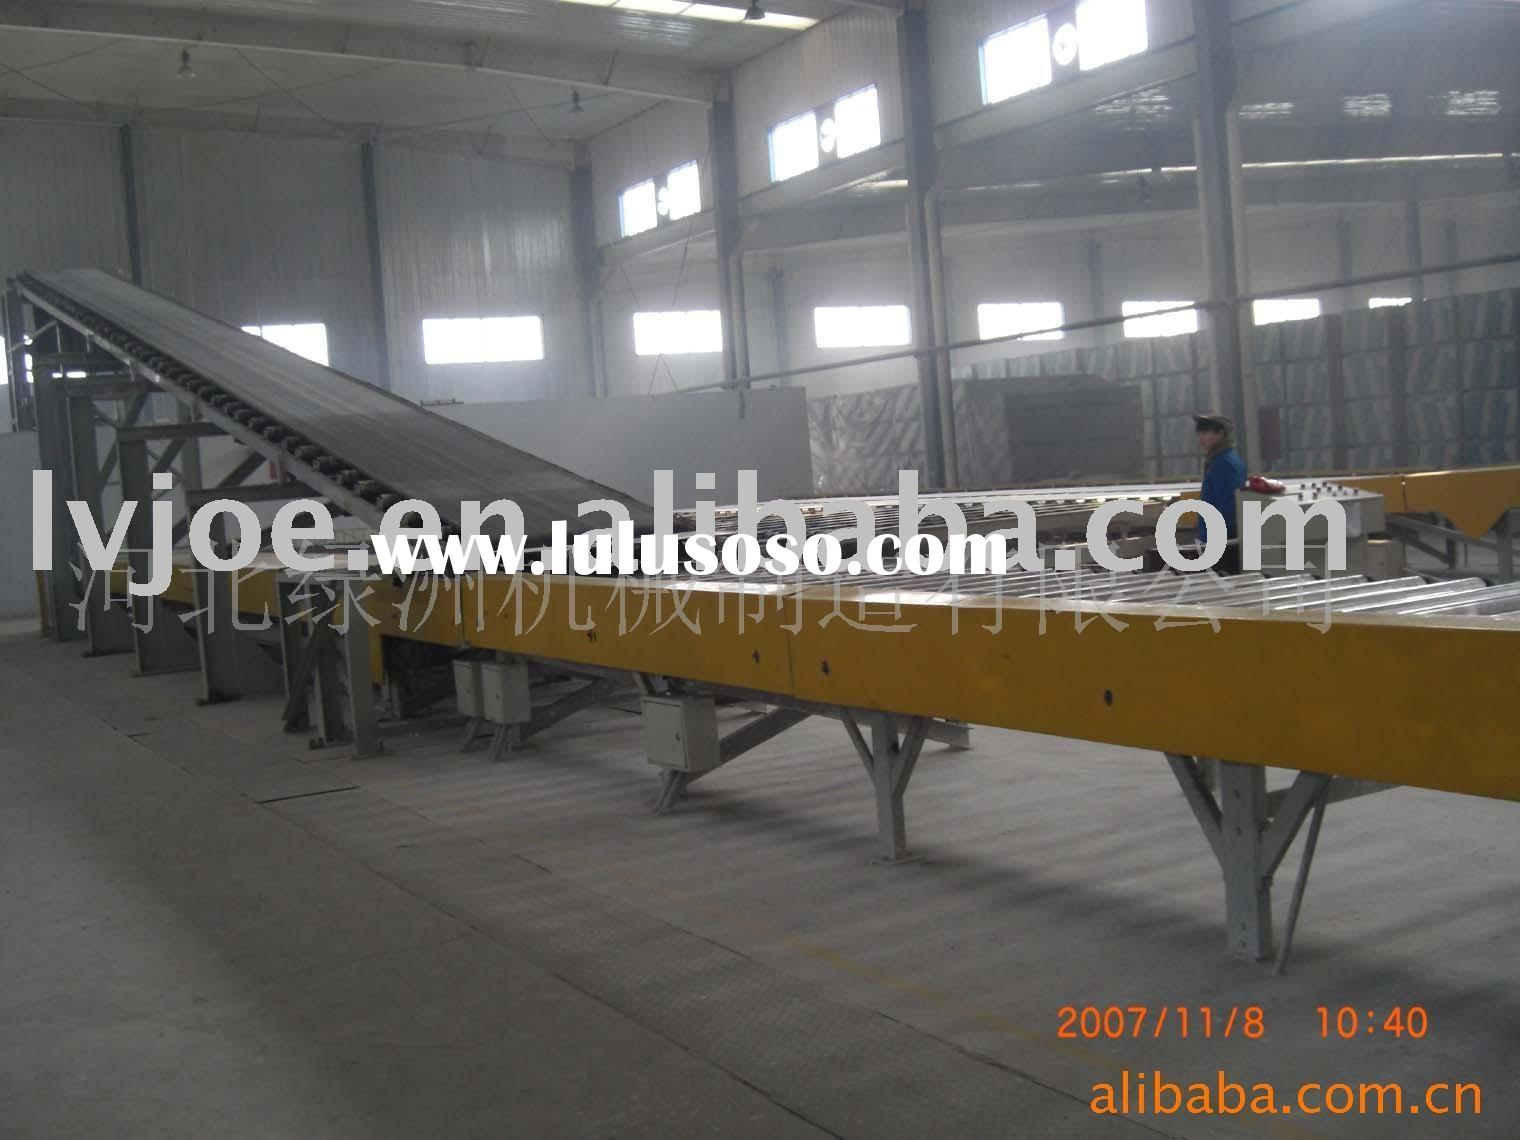 plaster board production machine